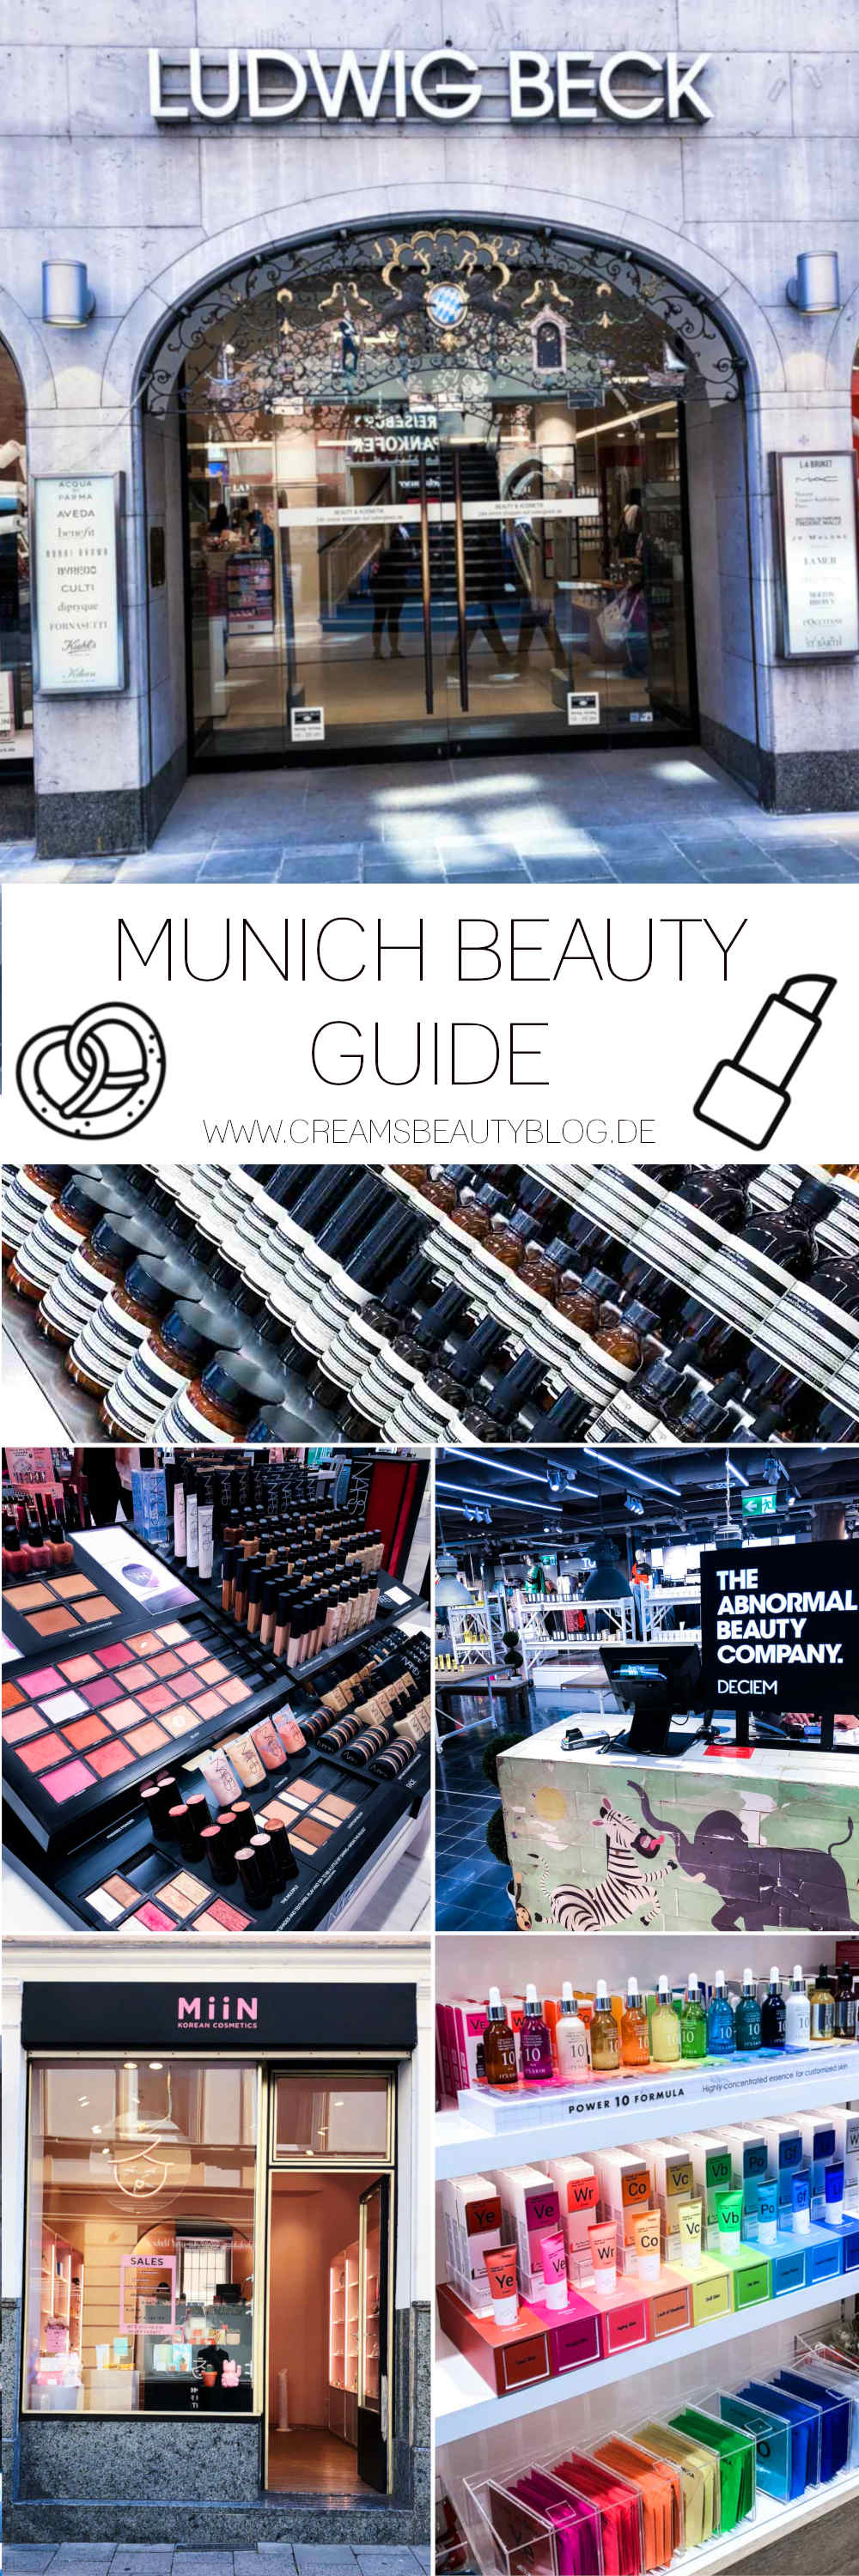 Munich Beauty Guide